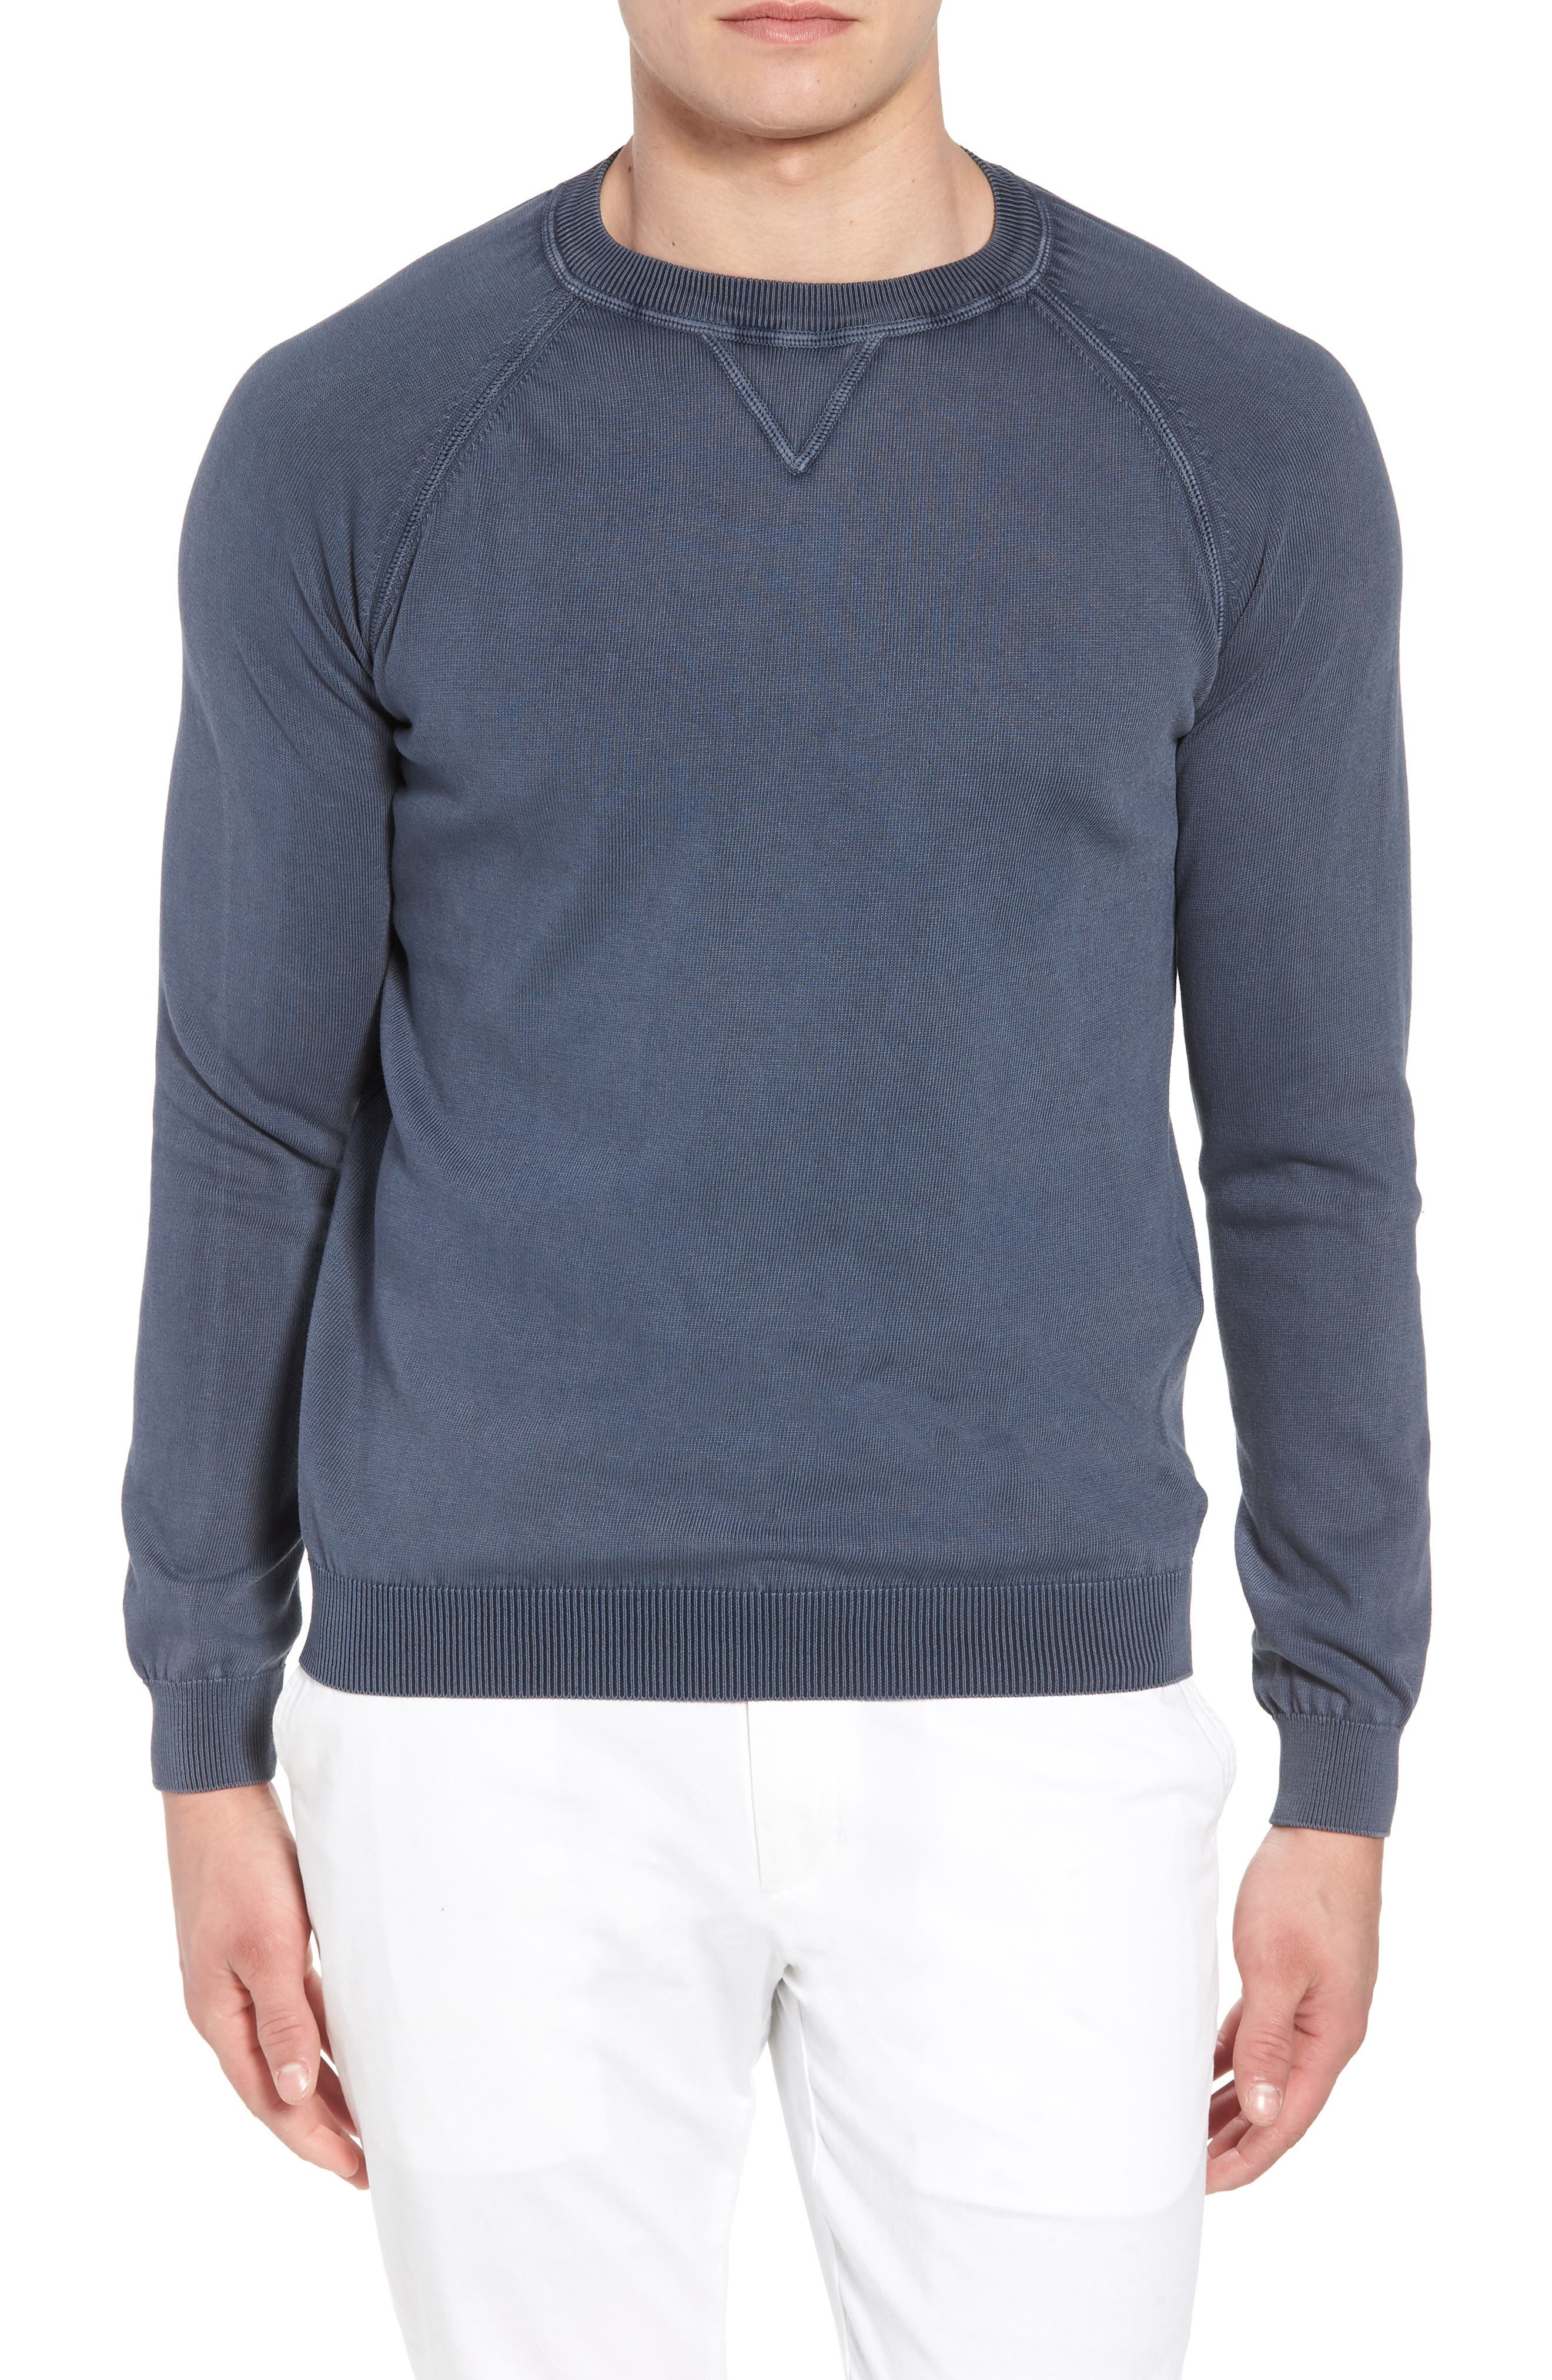 Alternate Image 1 Selected - David Donahue Stonewash Cotton Sweatshirt